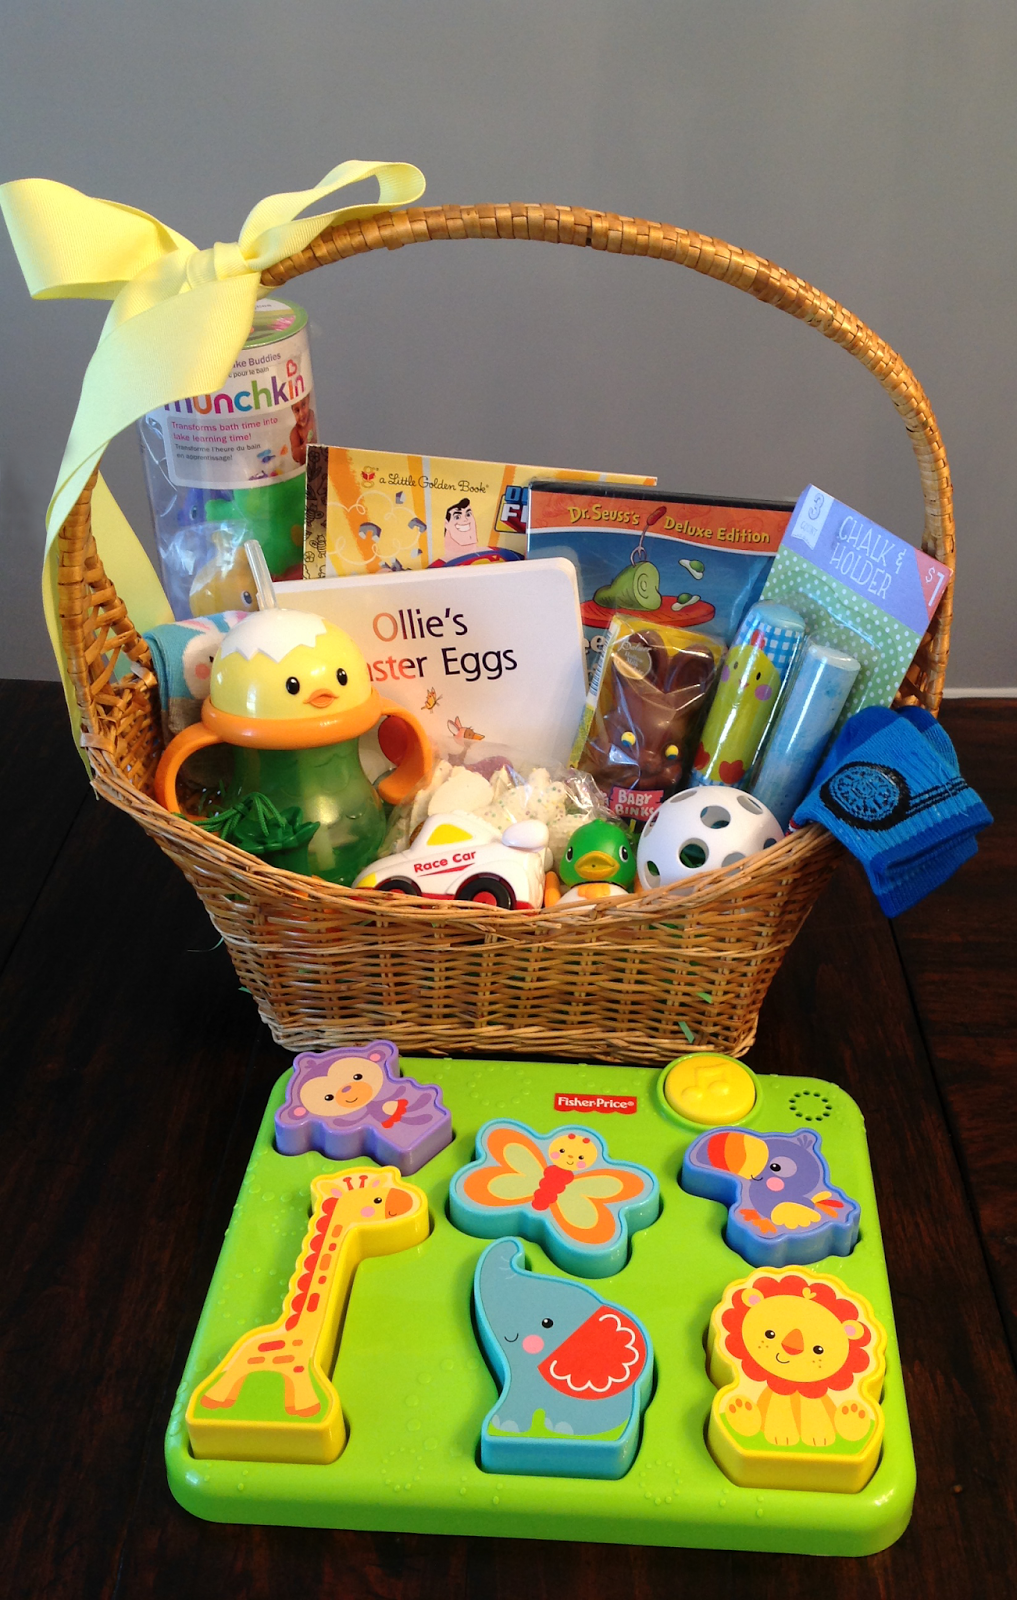 95 easter basket ideas for babies and toddlers basket ideas easter basket ideas for babies and toddlers 95 ideas perfect for a baby or toddler negle Image collections